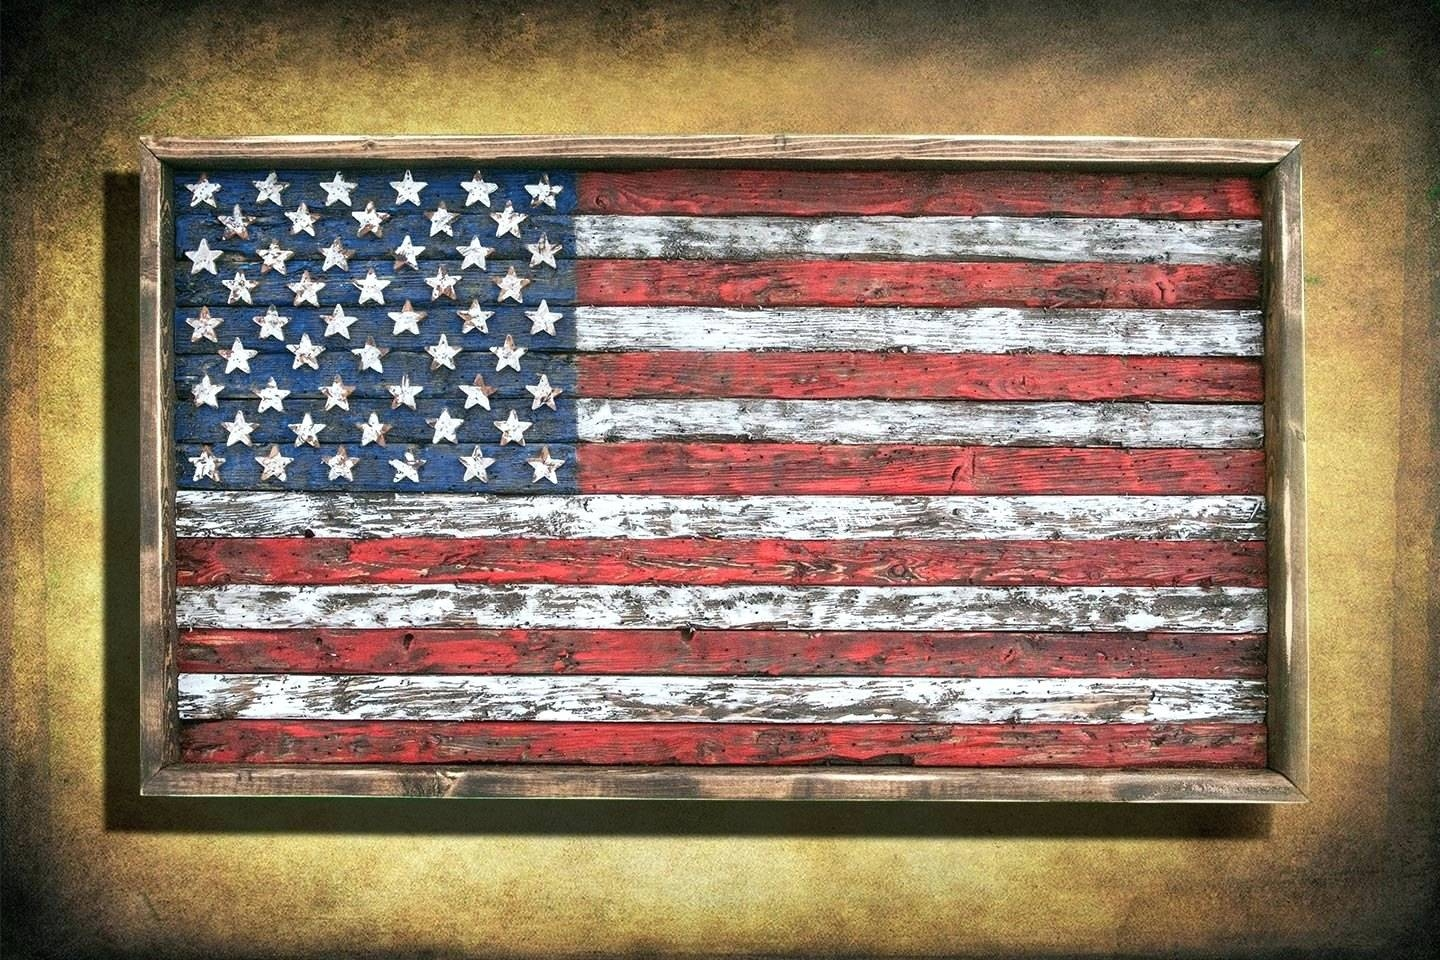 Wall Arts ~ Patriotic Metal Wall Art Appealing Wall Decor Wooden Within Newest American Flag Metal Wall Art (View 15 of 20)